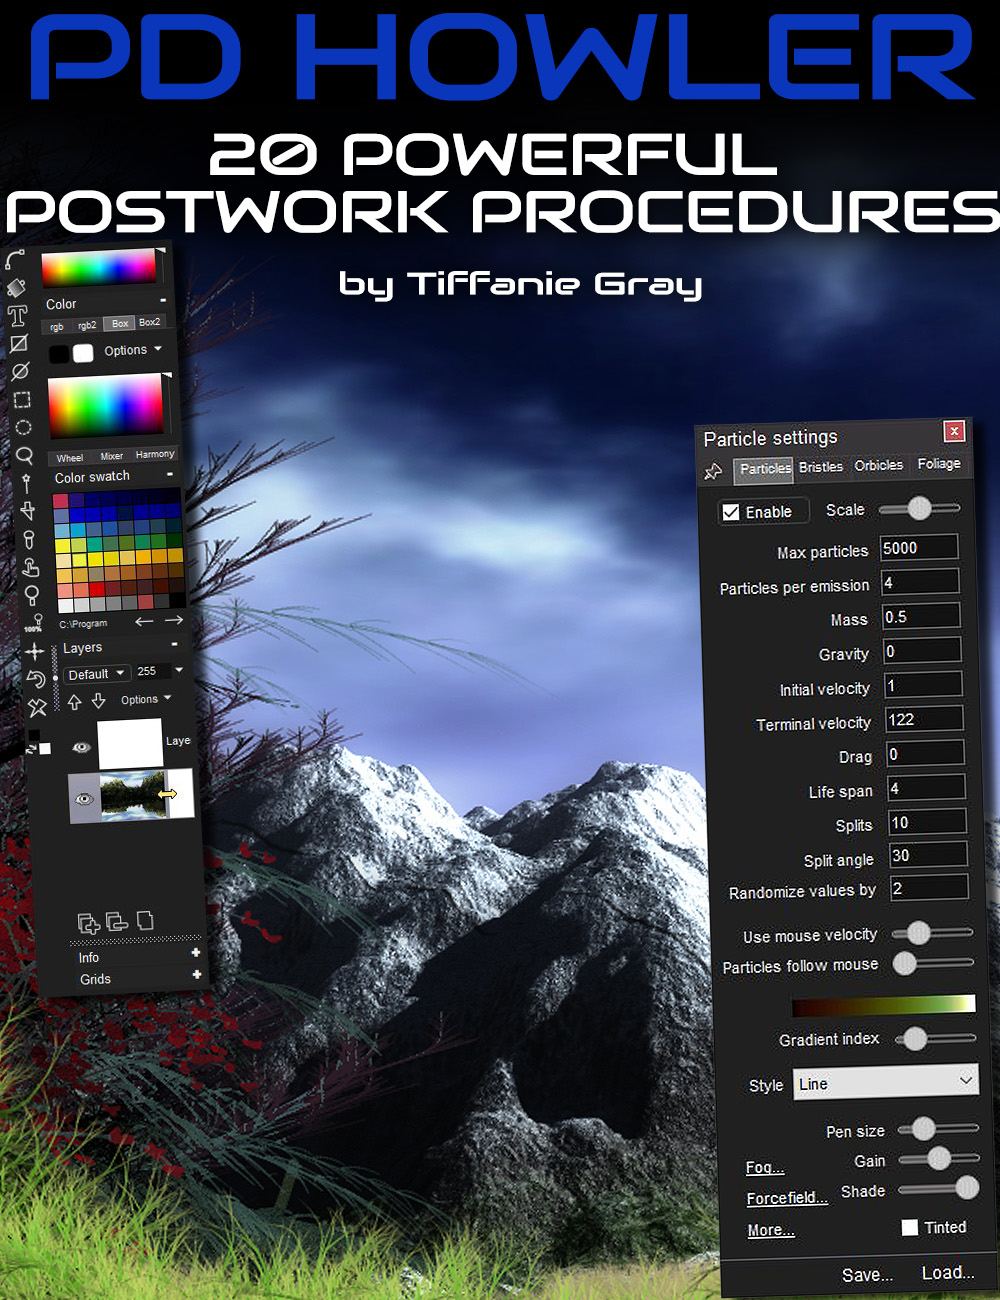 20 Powerful Postwork Procedures with PD Howler by: Digital Art Live, 3D Models by Daz 3D